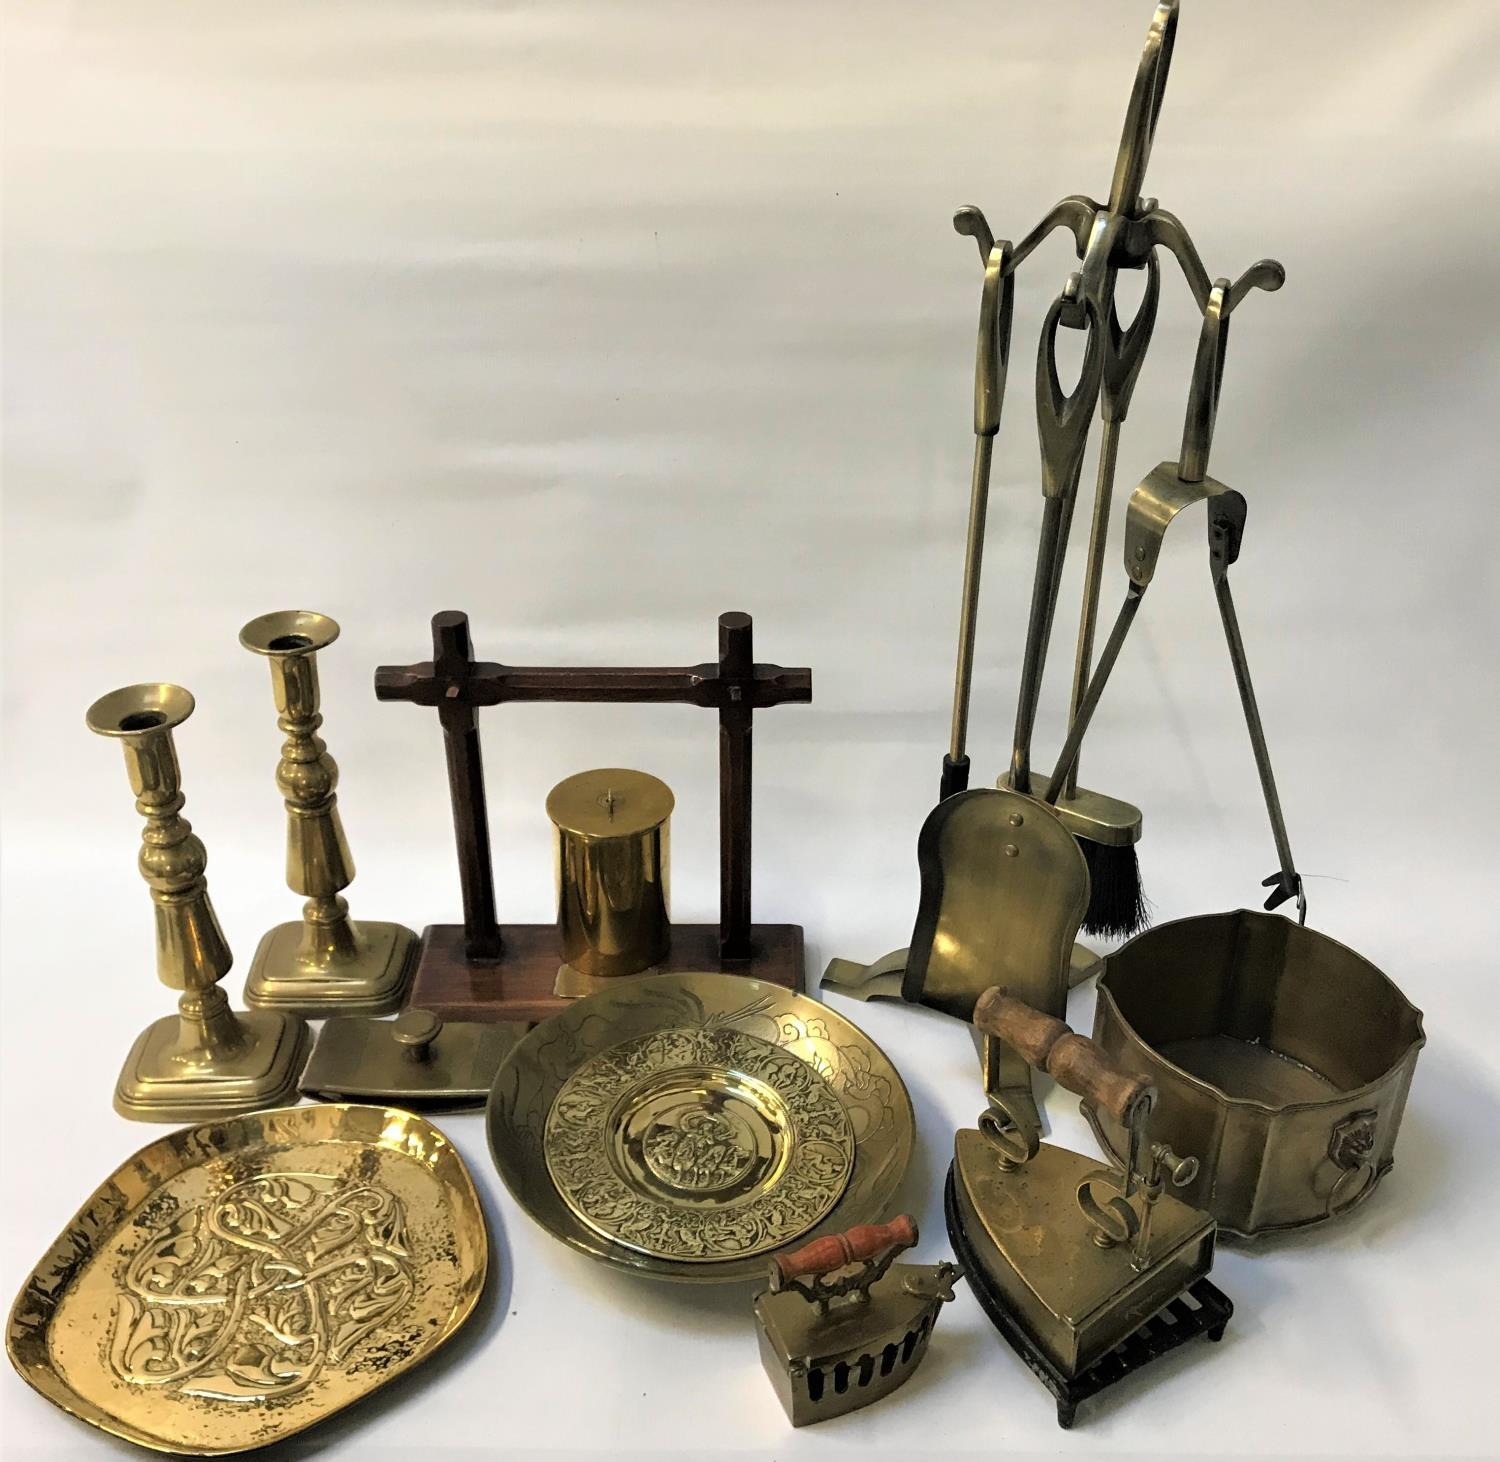 Lot 278 - SELECTION OF BRASSWARE including an Arts and Crafts tray with entwined motif decoration; a fire